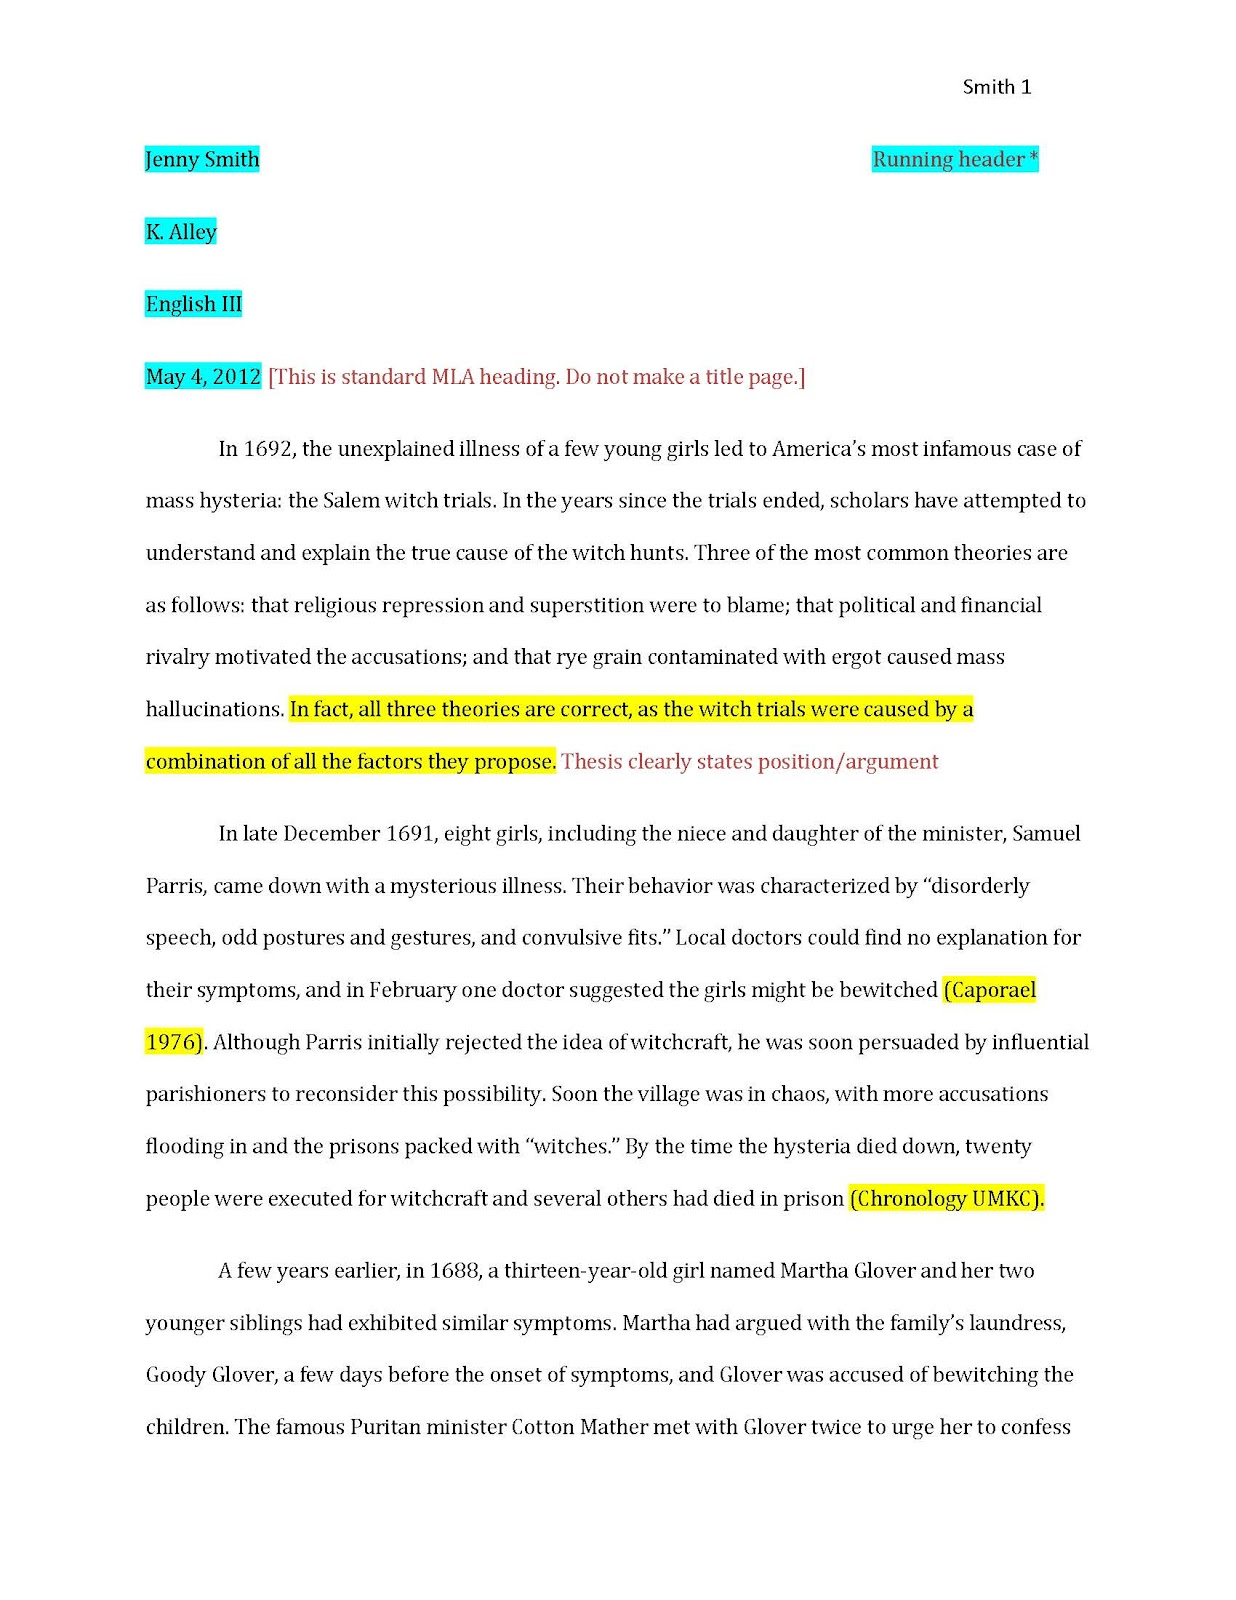 english class essay what is business ethics essay also english essay samples citation in essay citation